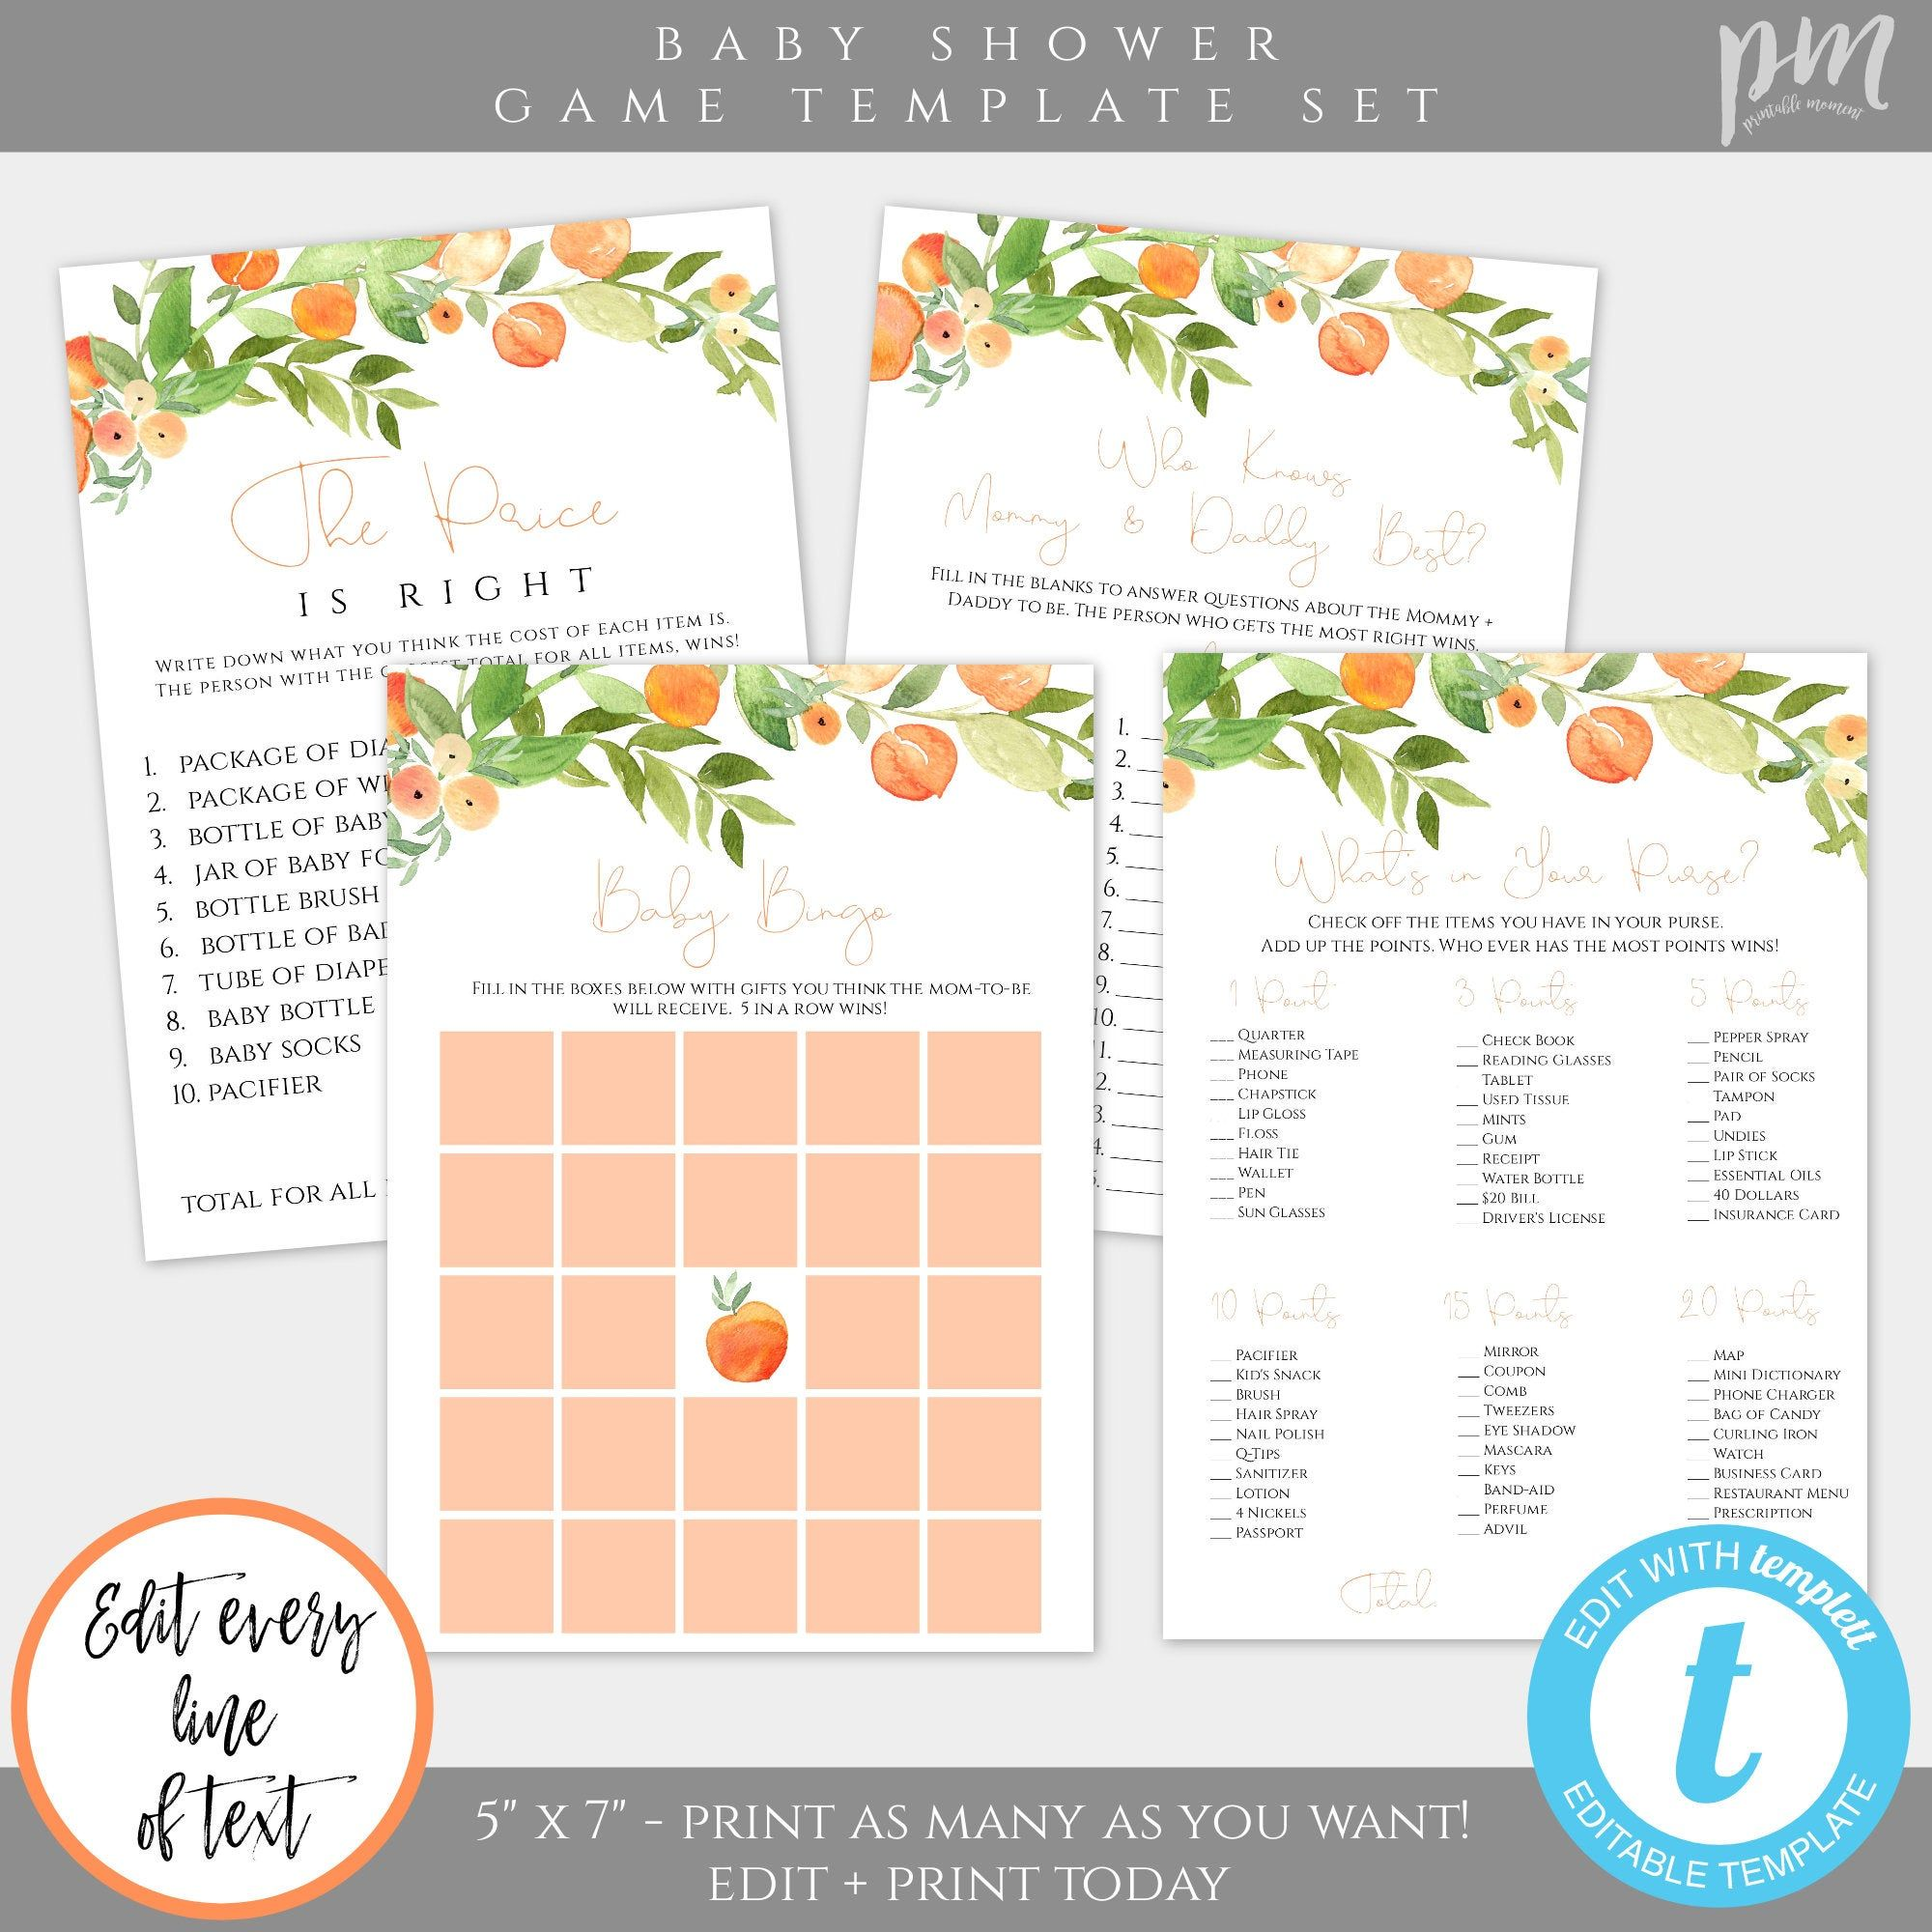 Sweet As A Peach Baby Shower Game Template Set Game Bundle Etsy Peach Baby Shower Baby Shower Games Baby Shower